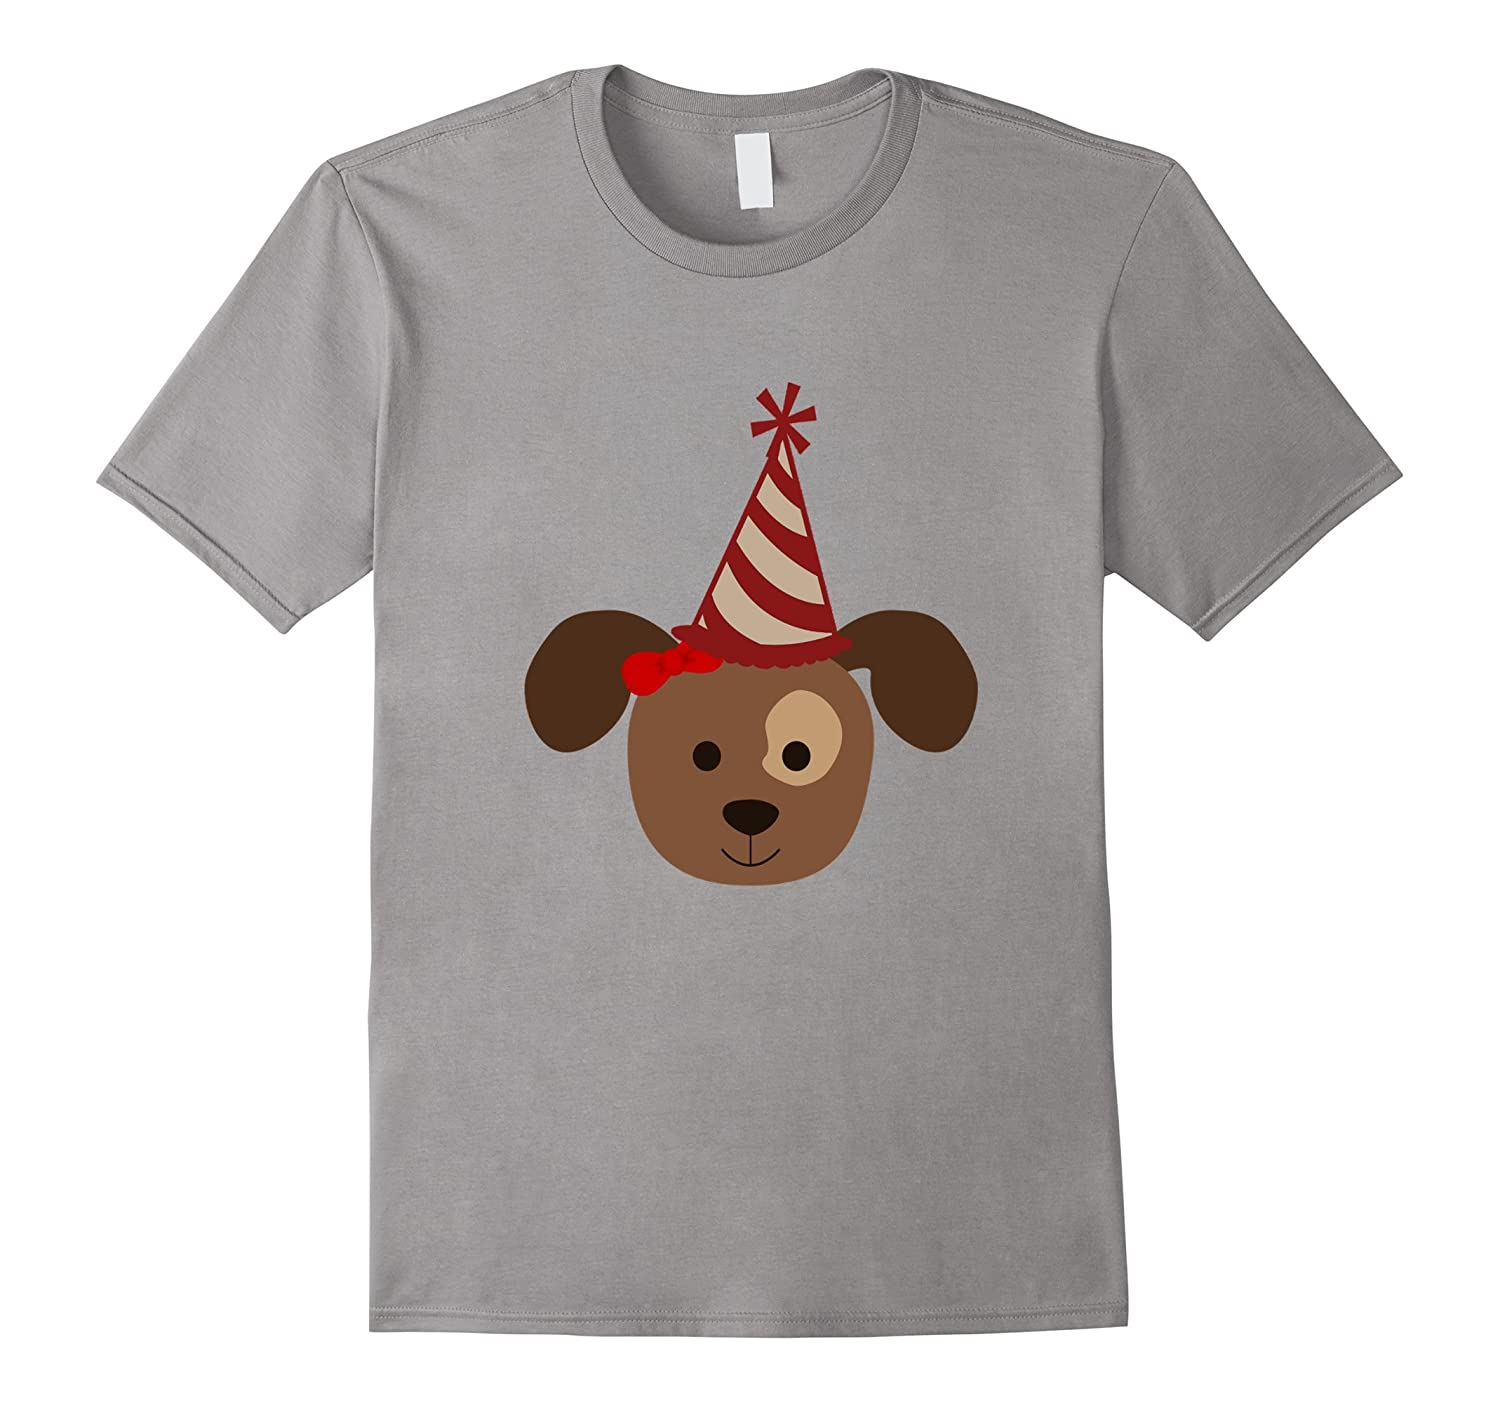 97689798d88e Puppy Shirts For Girls, Puppy Birthday Shirts, Puppy Party-ANZ ...